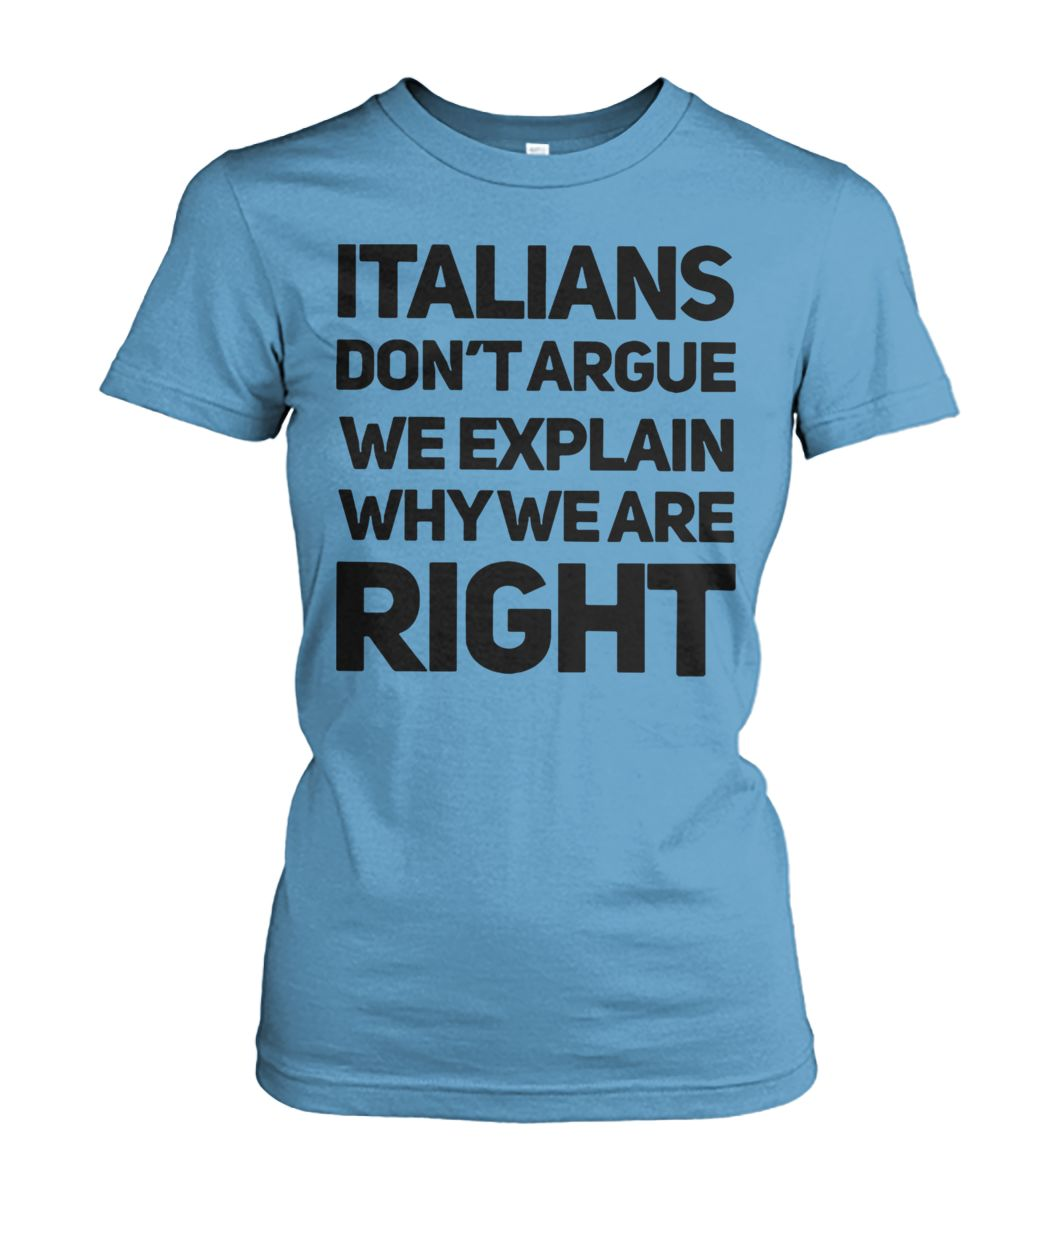 Italians don't argue we explain why we are right women's crew tee